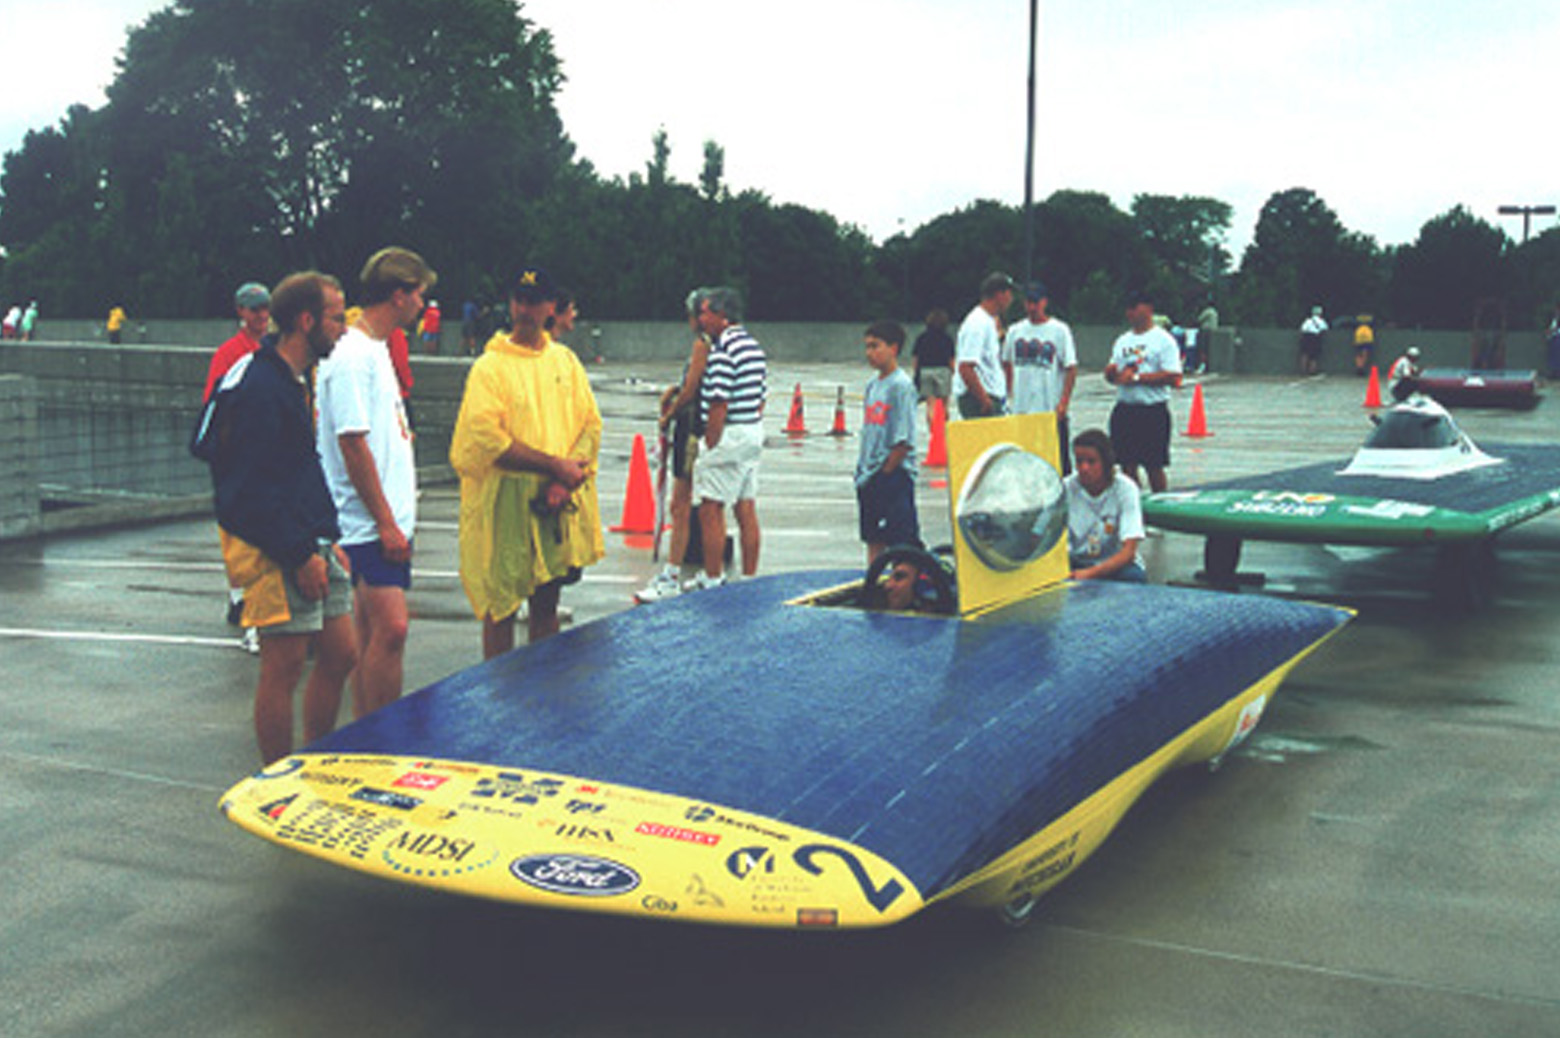 Solar car parked in the rain.